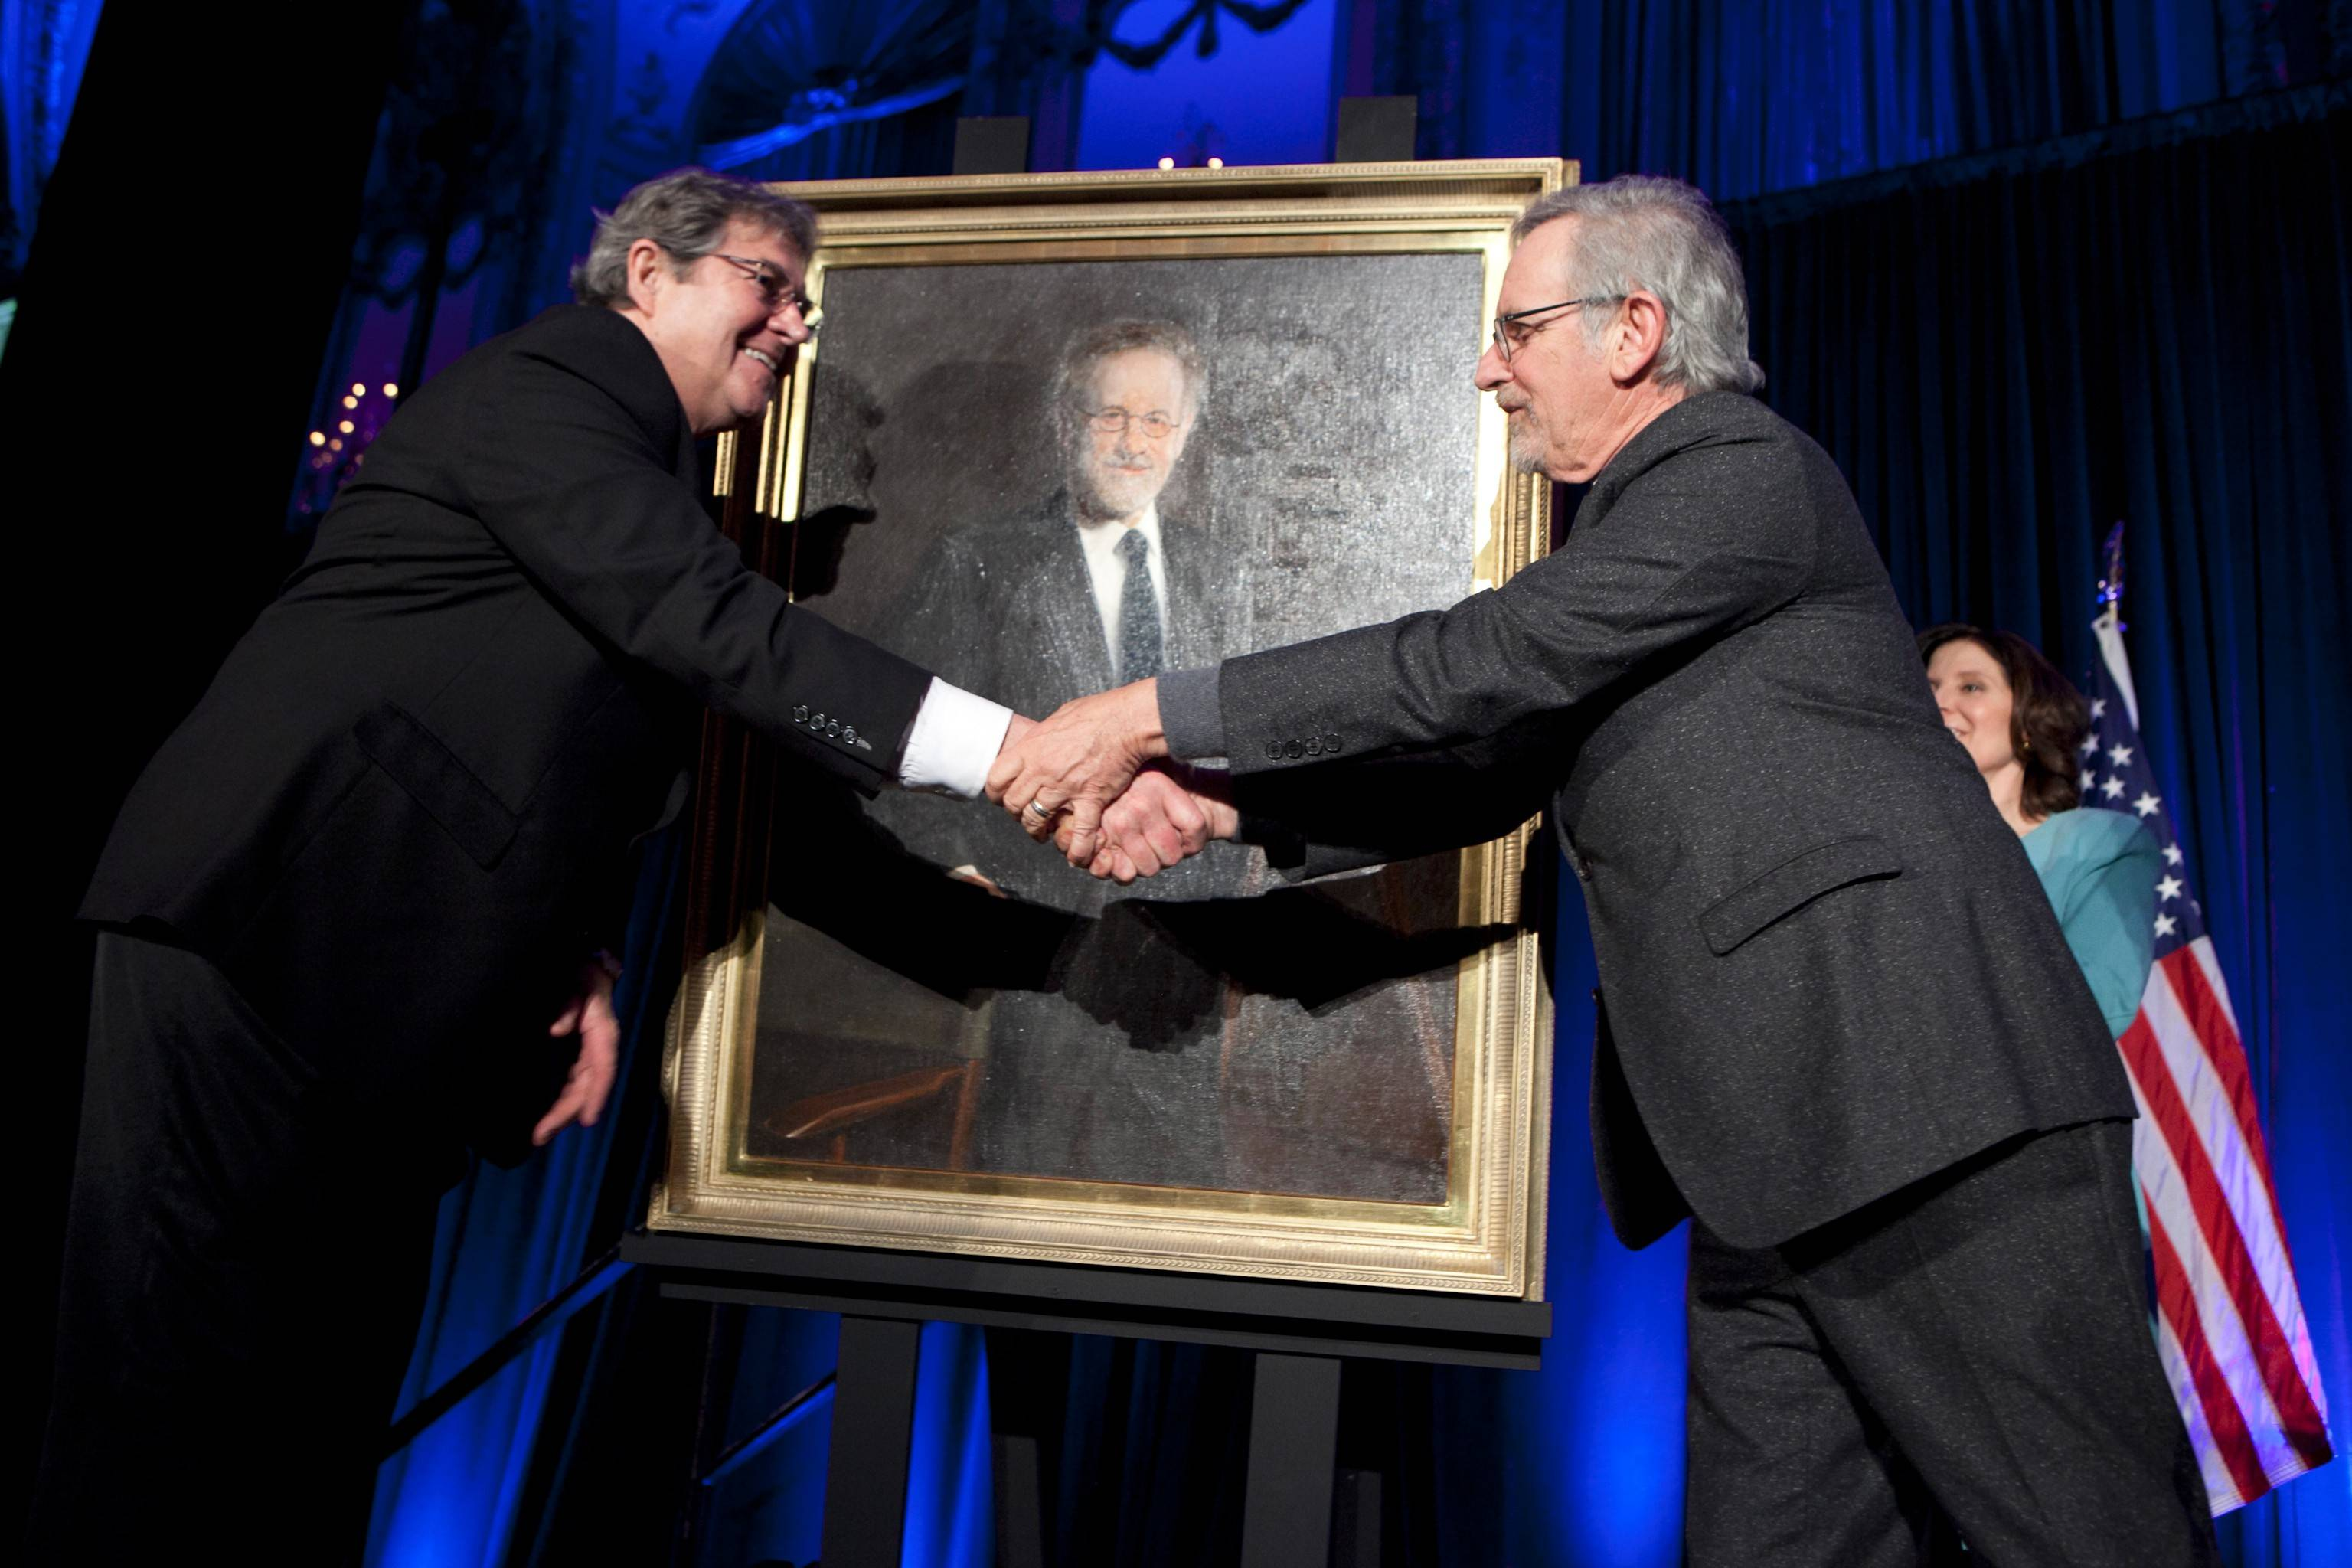 Arlington Heights portrait artist William Chambers shakes hands with Hollywood film director Steven Spielberg at the 2014 Lincoln Leadership Dinner.